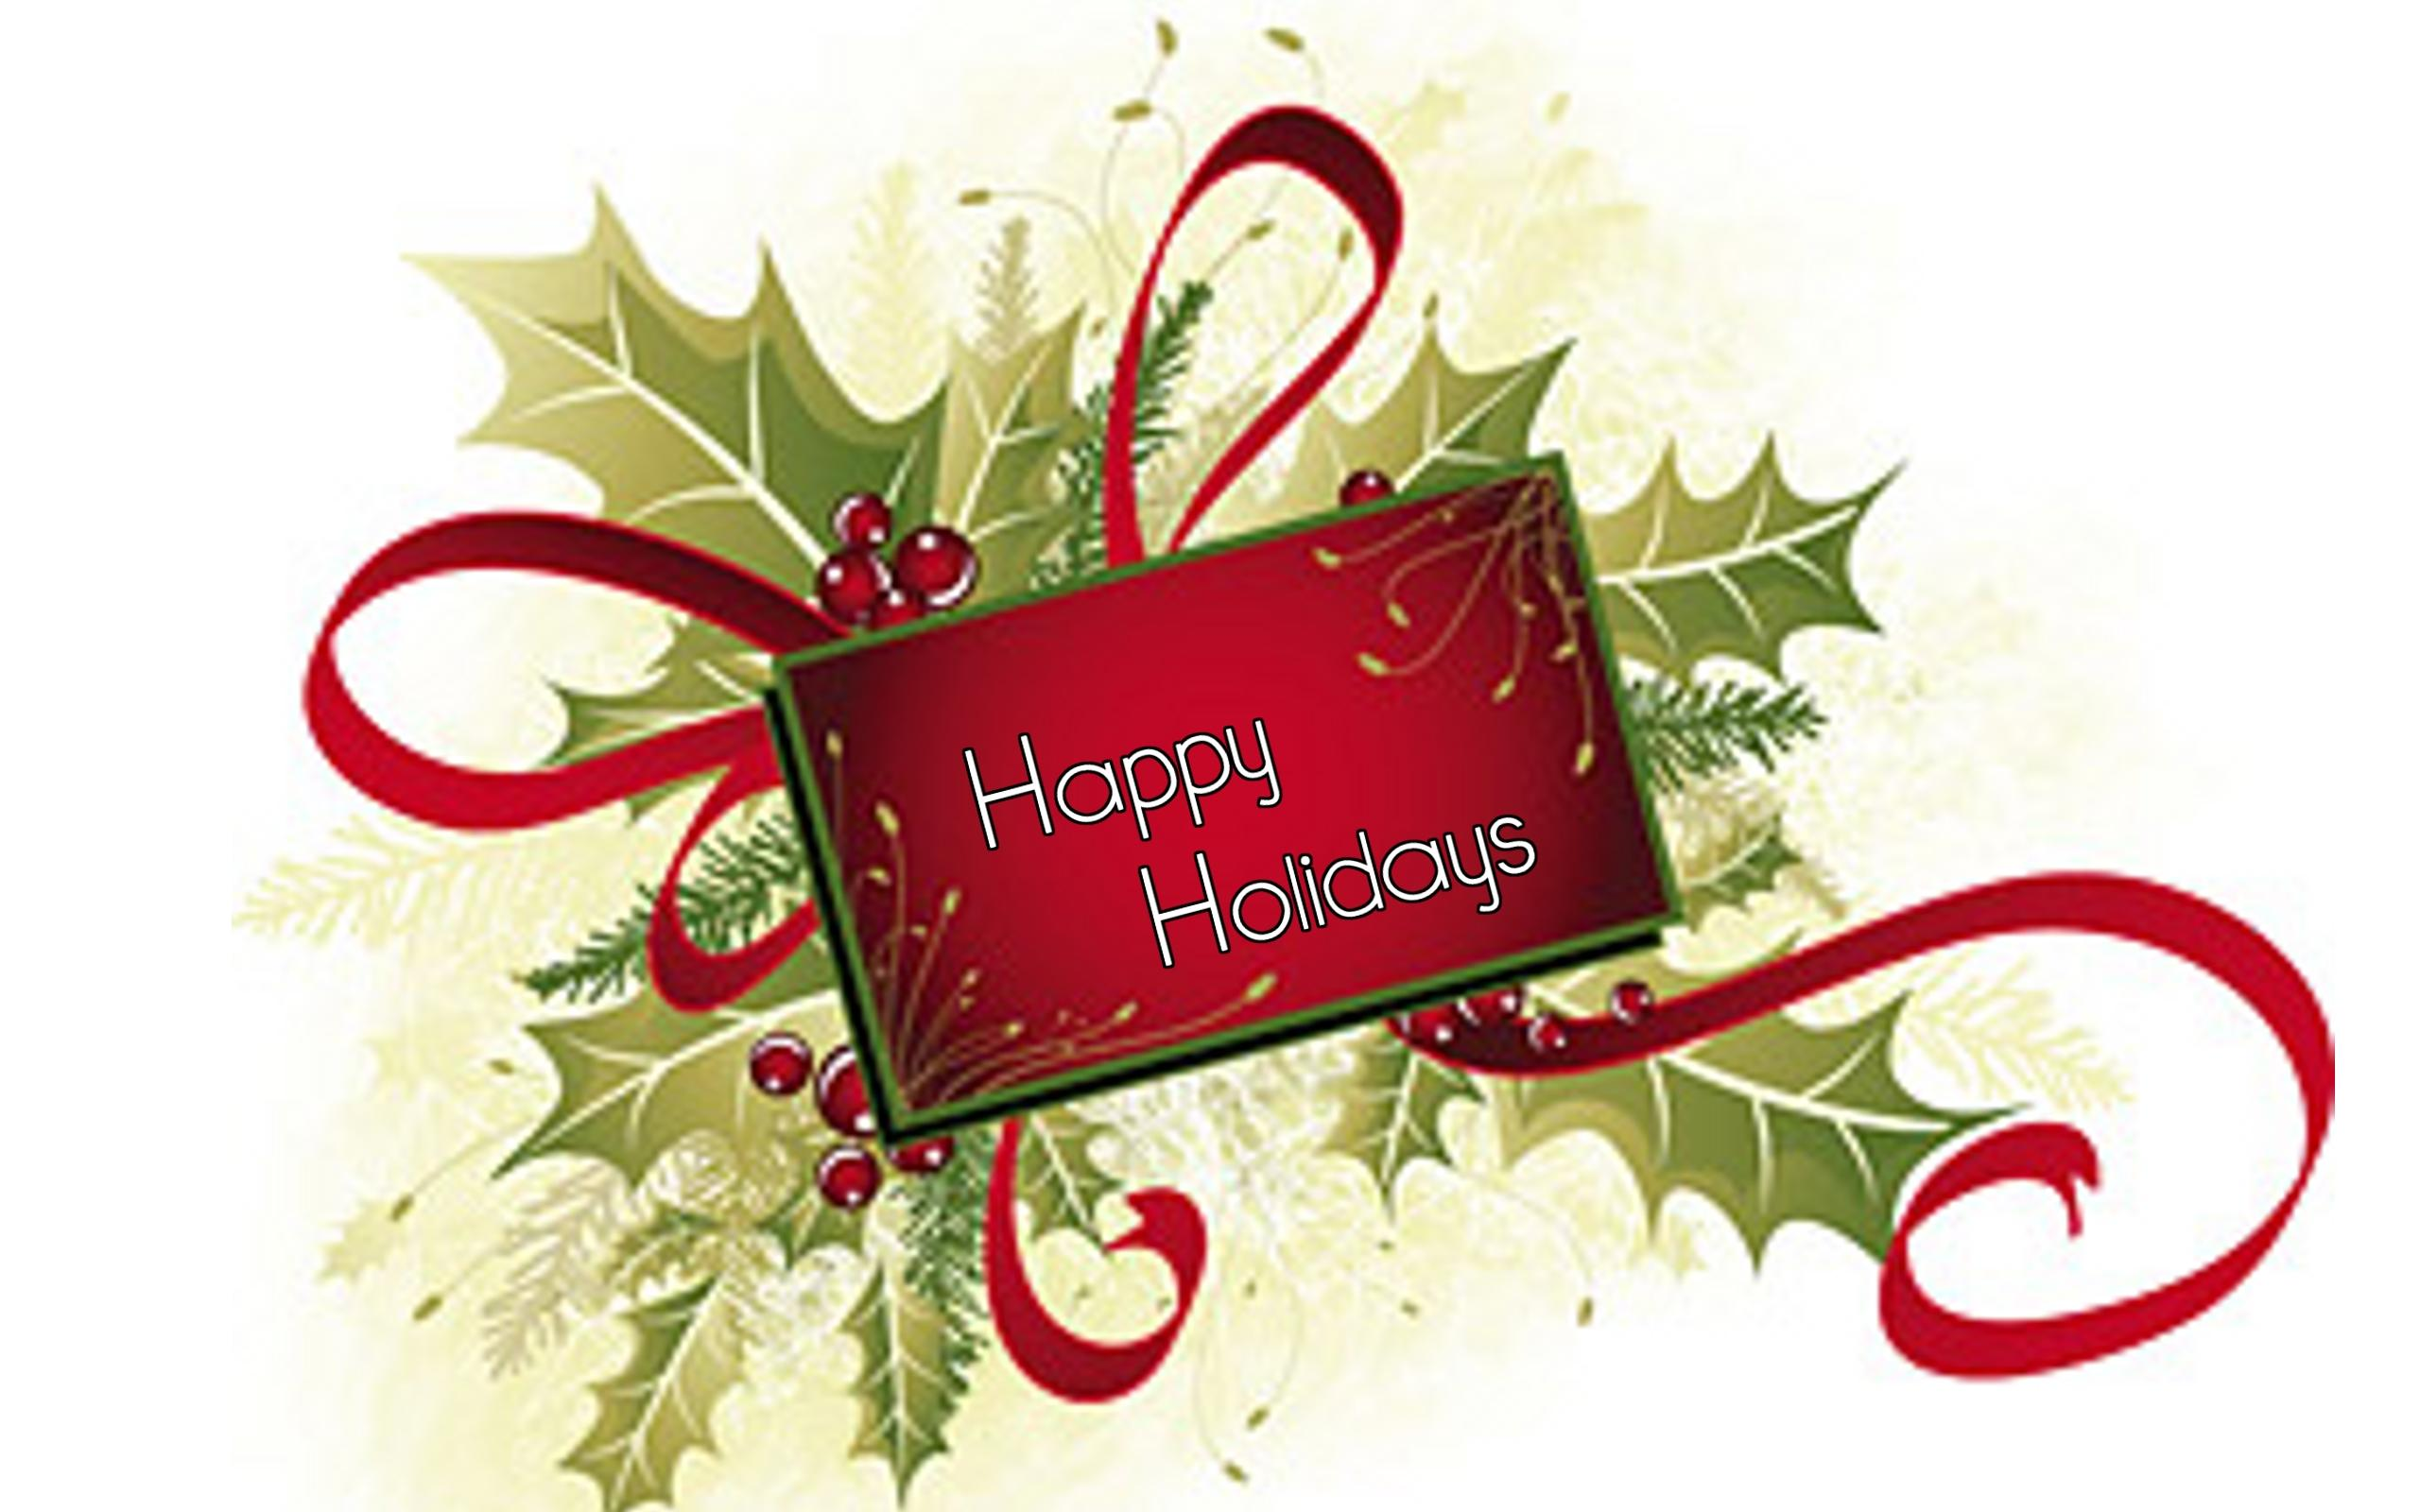 Happy Holiday Wallpapers 930760   HD Wallpaper Download 2560x1600